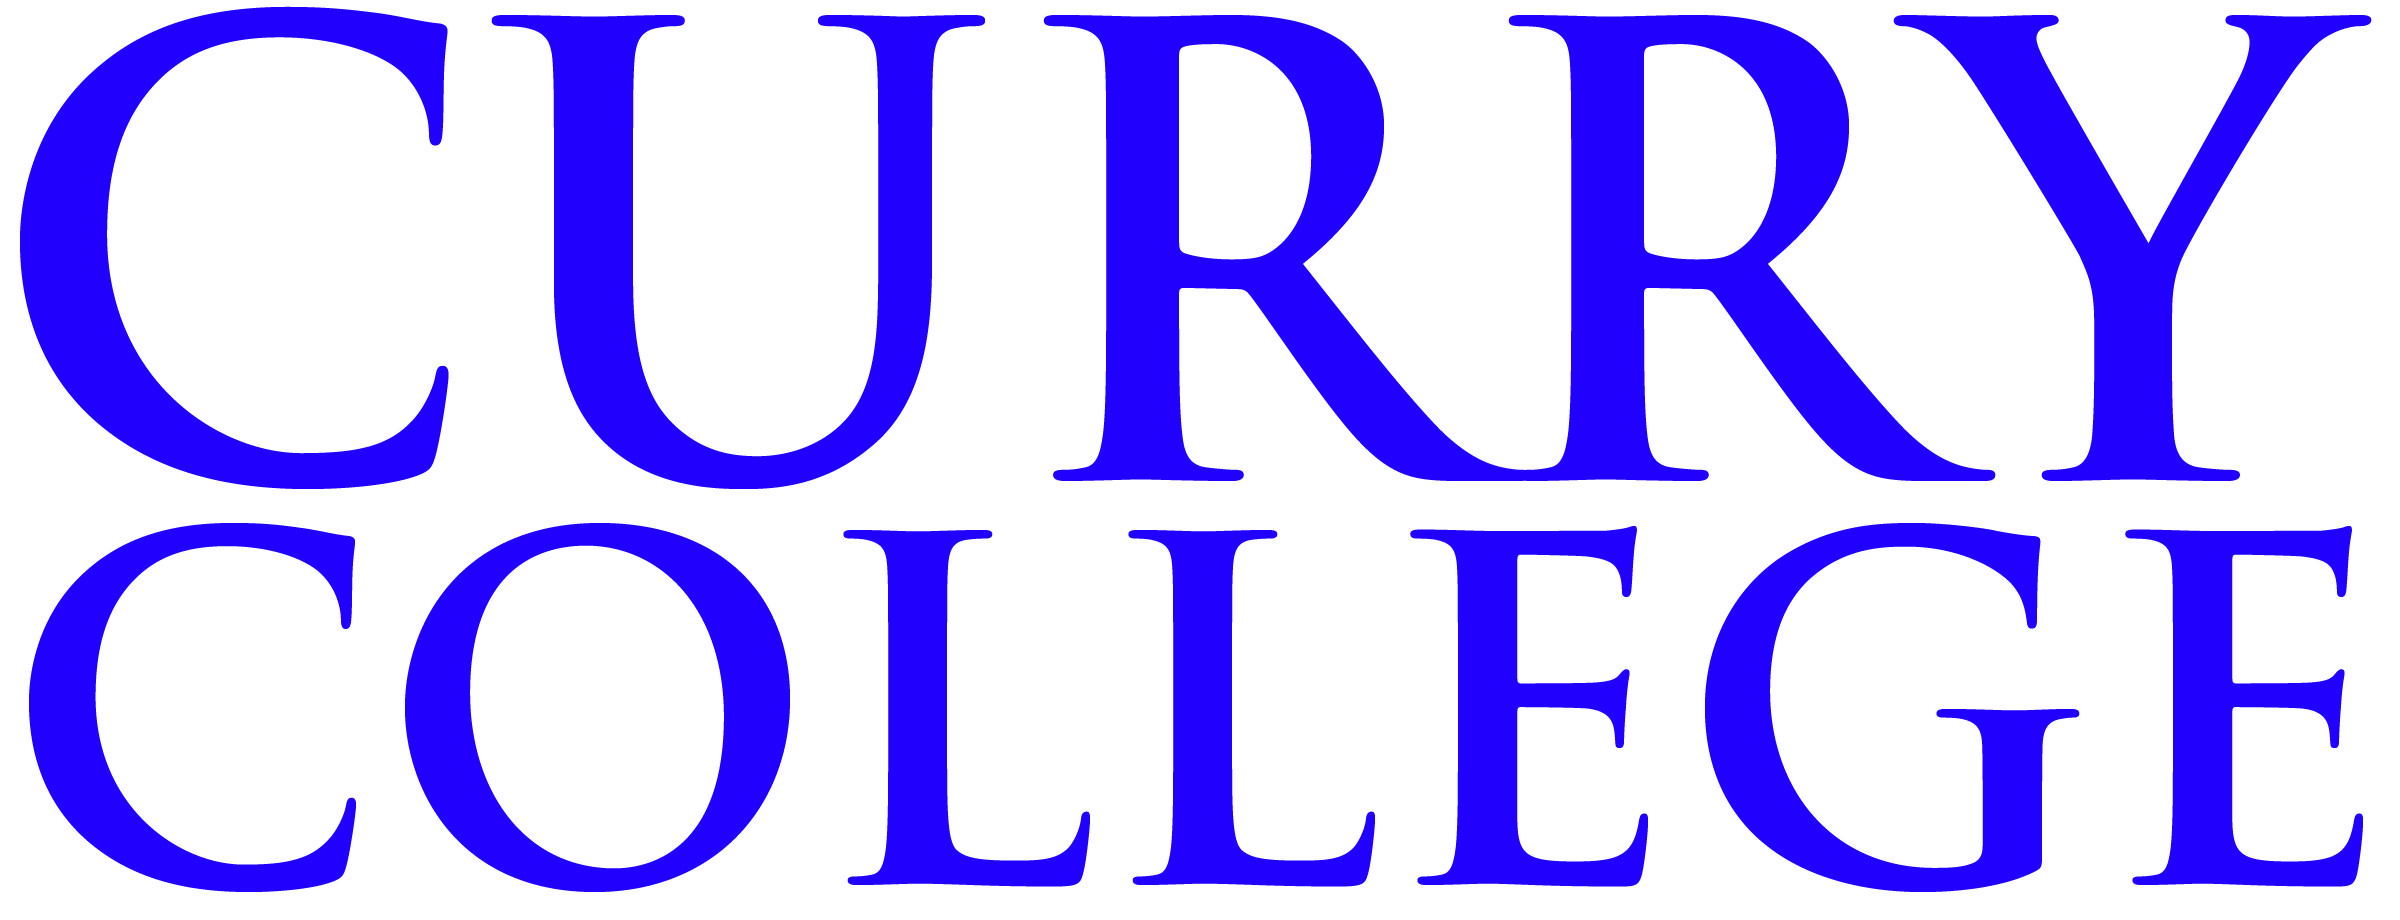 Curry_logo_2L_pmsviolet.jpg